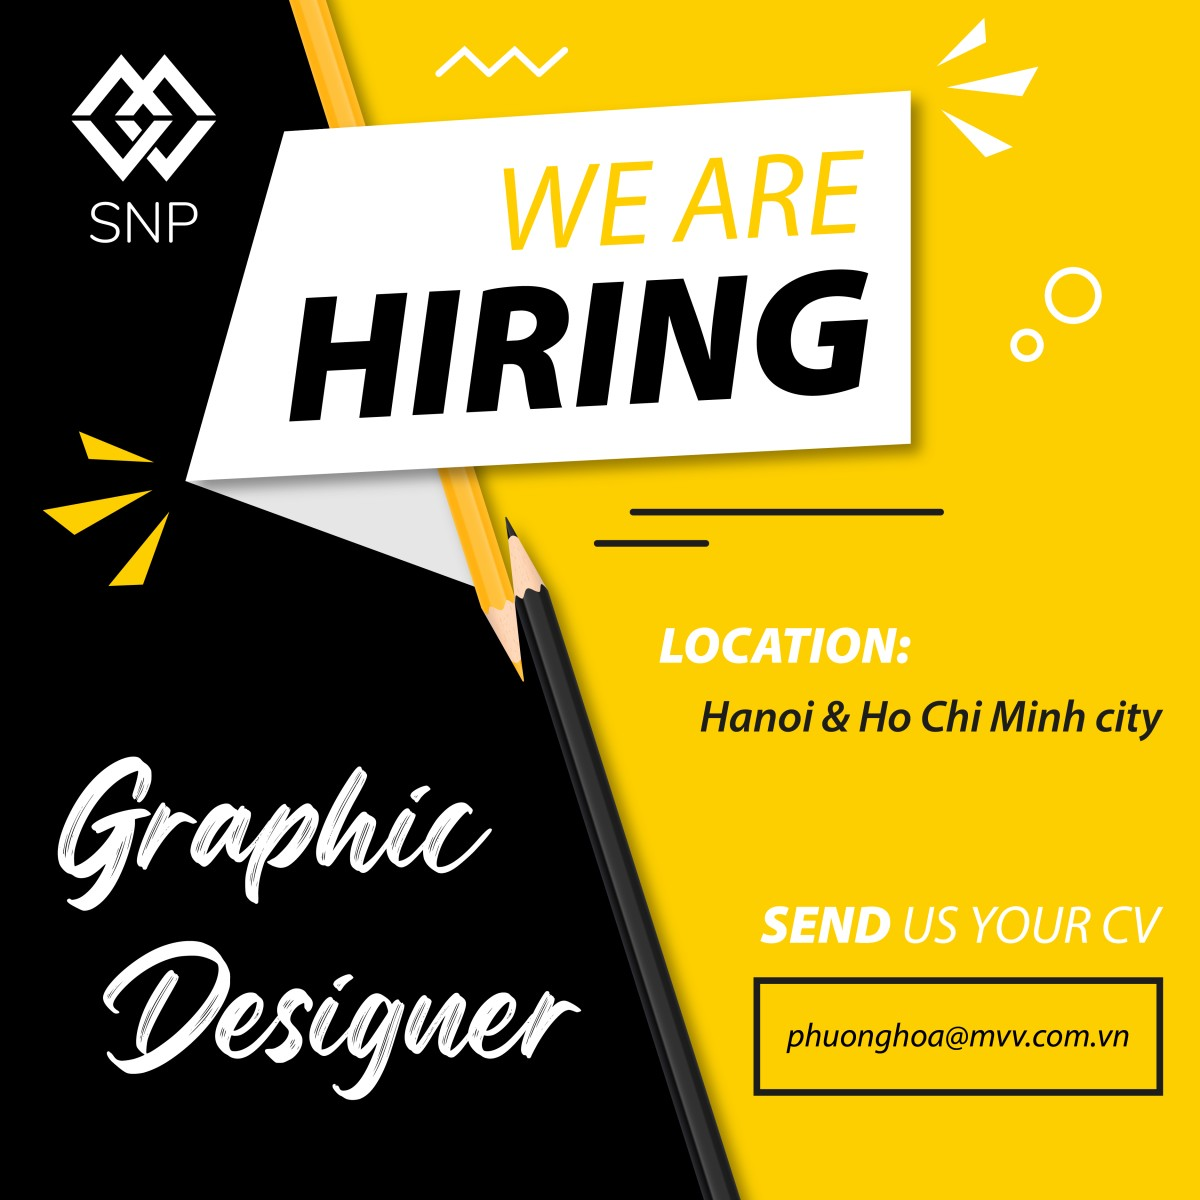 MVV SnP tuyển dụng Graphic Designer (Full-time/Part-time/Intern)